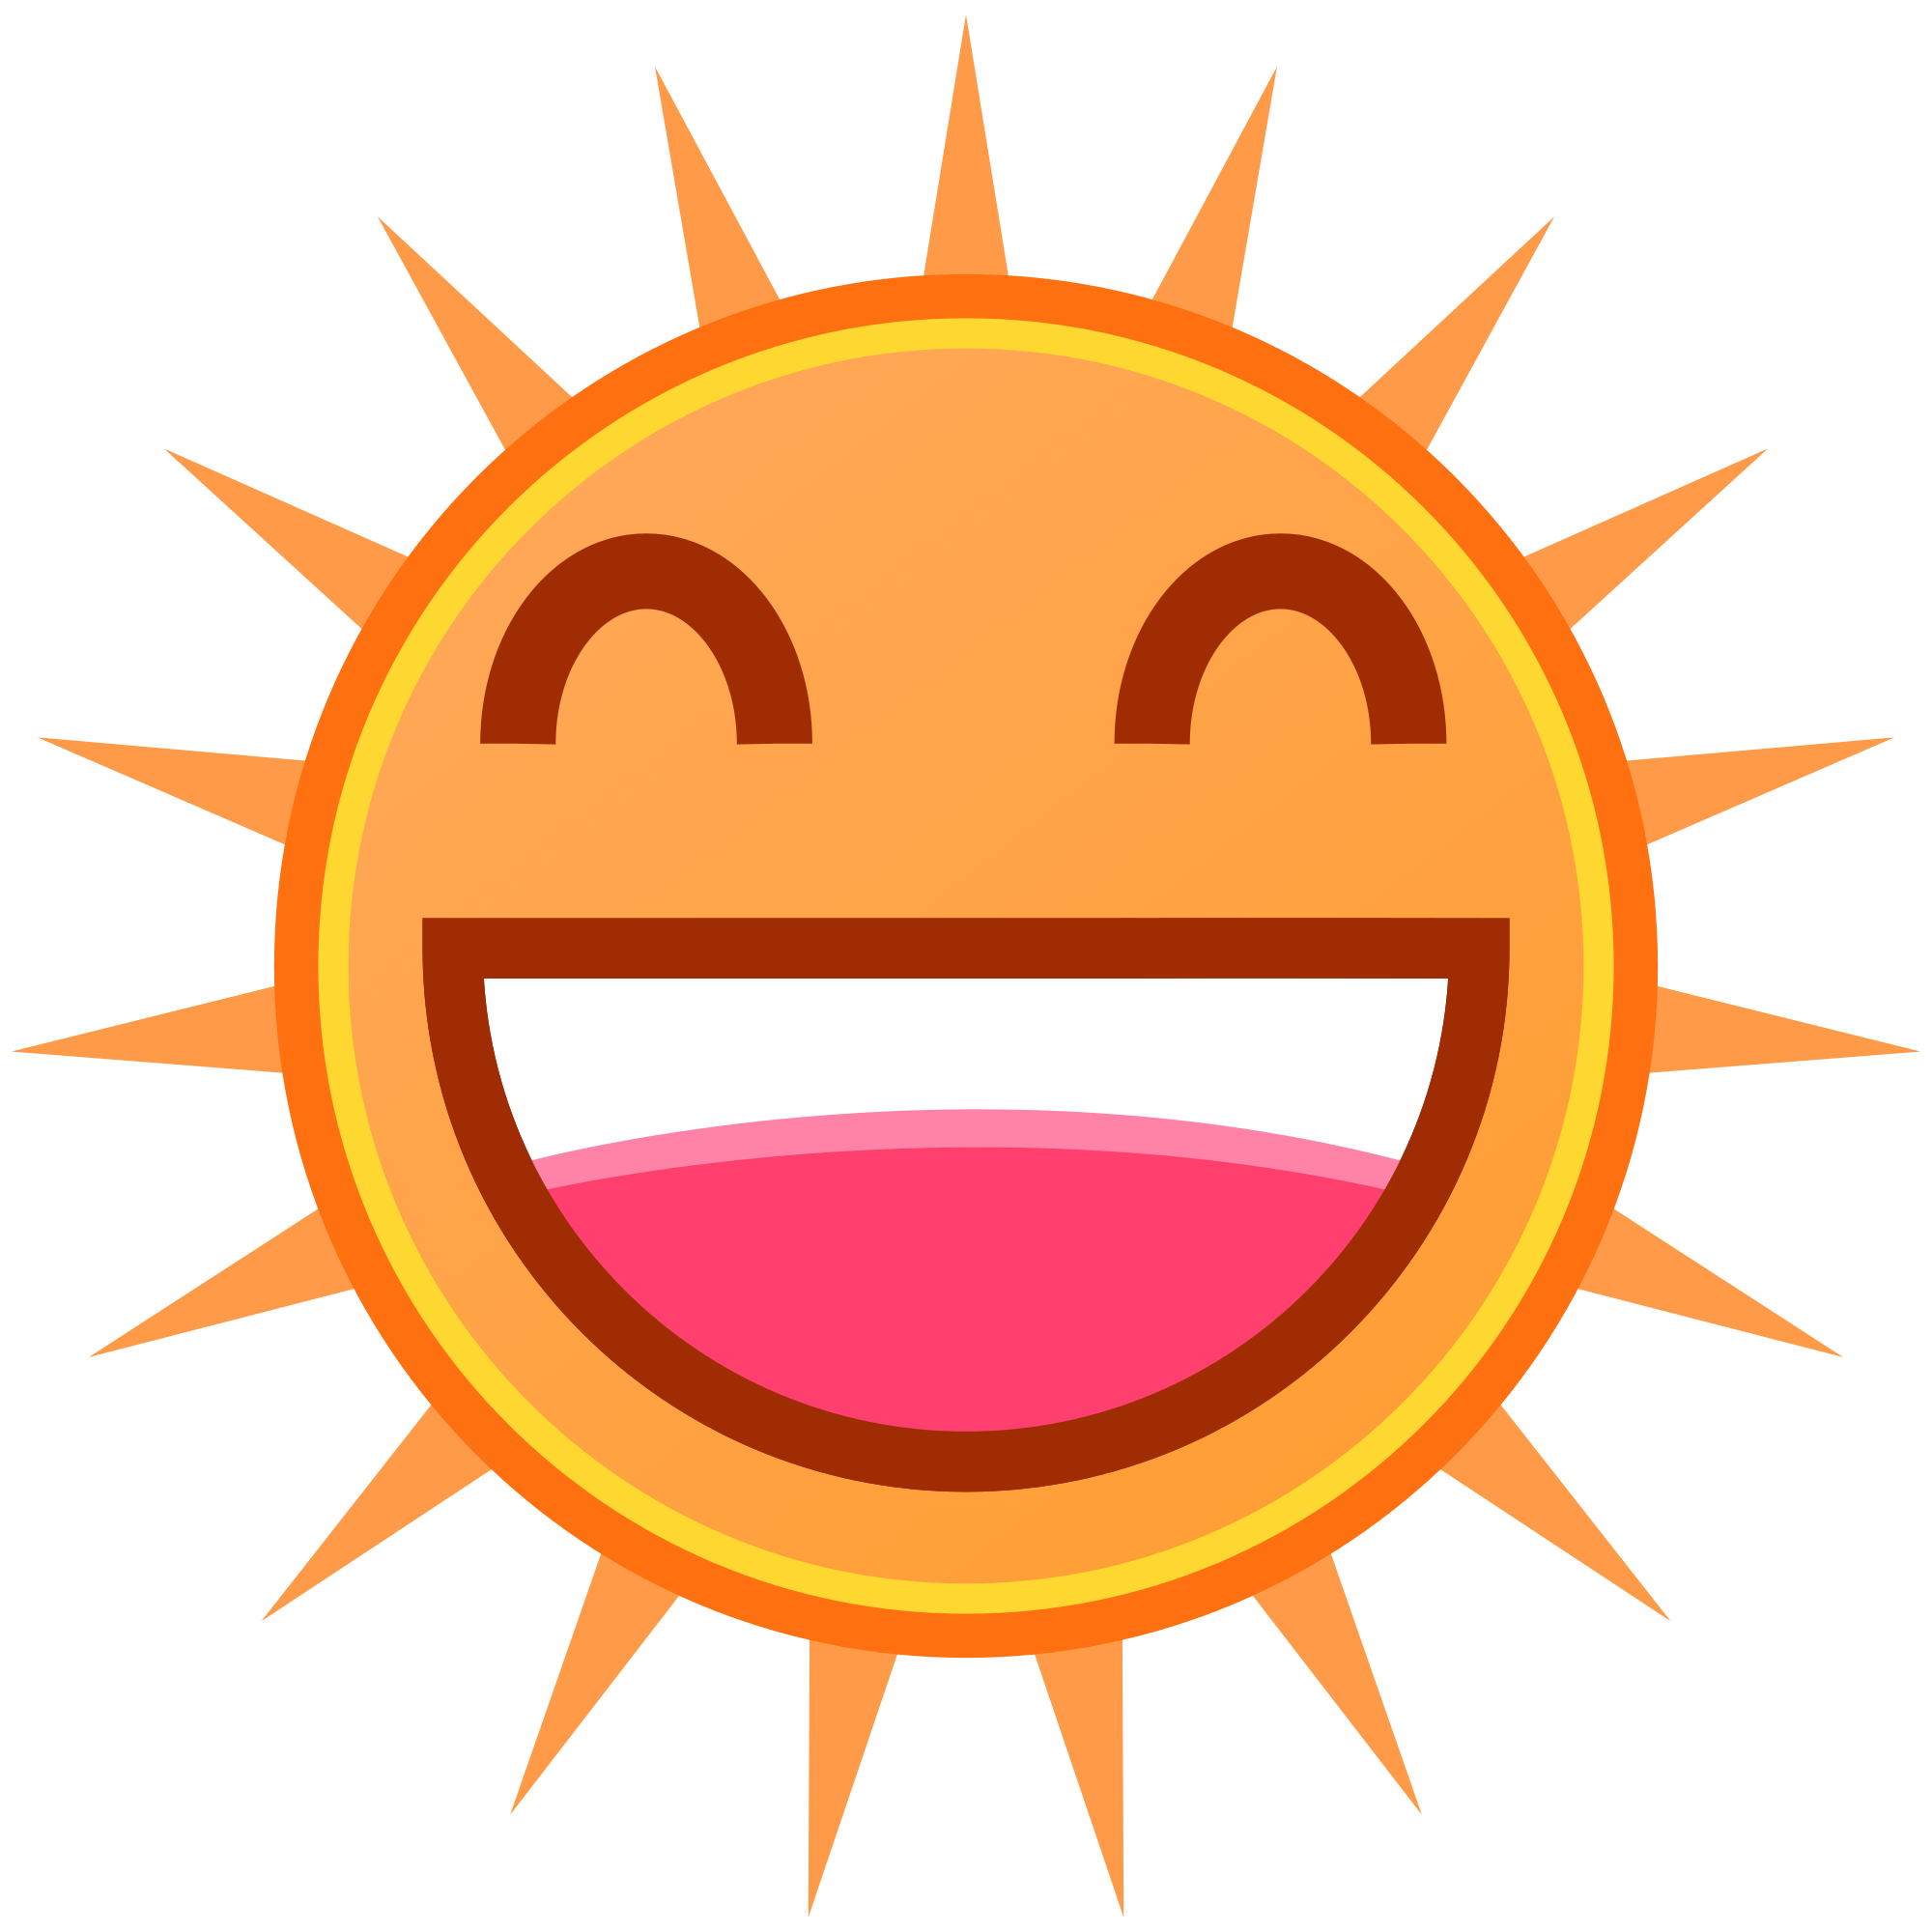 The sun with a face clipart picture freeuse library  picture freeuse library